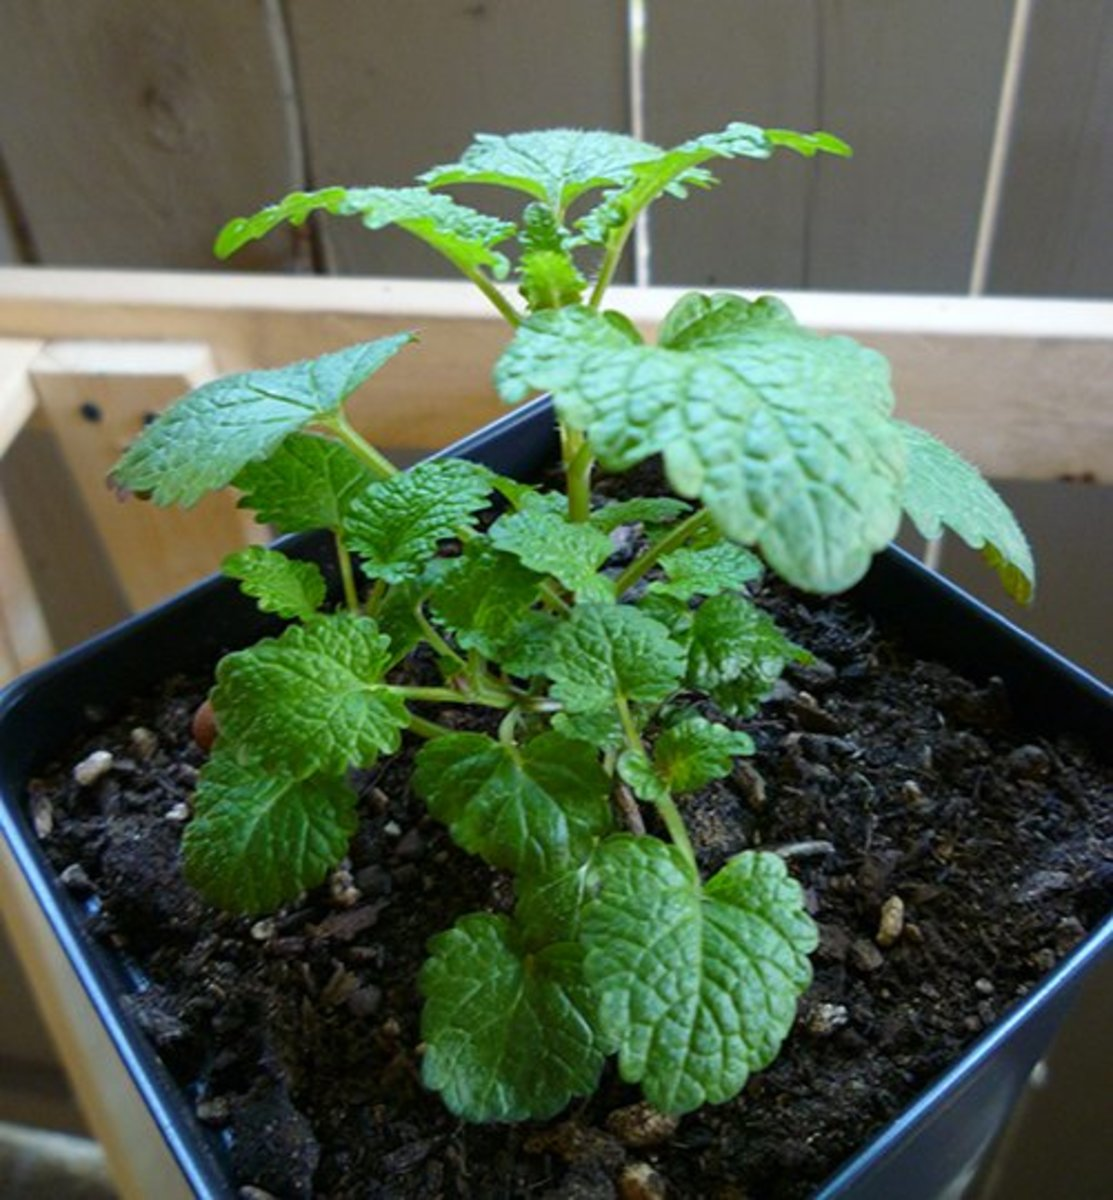 This eight-week-old lemon balm plant—which is part of the mint family—was grown from seed.